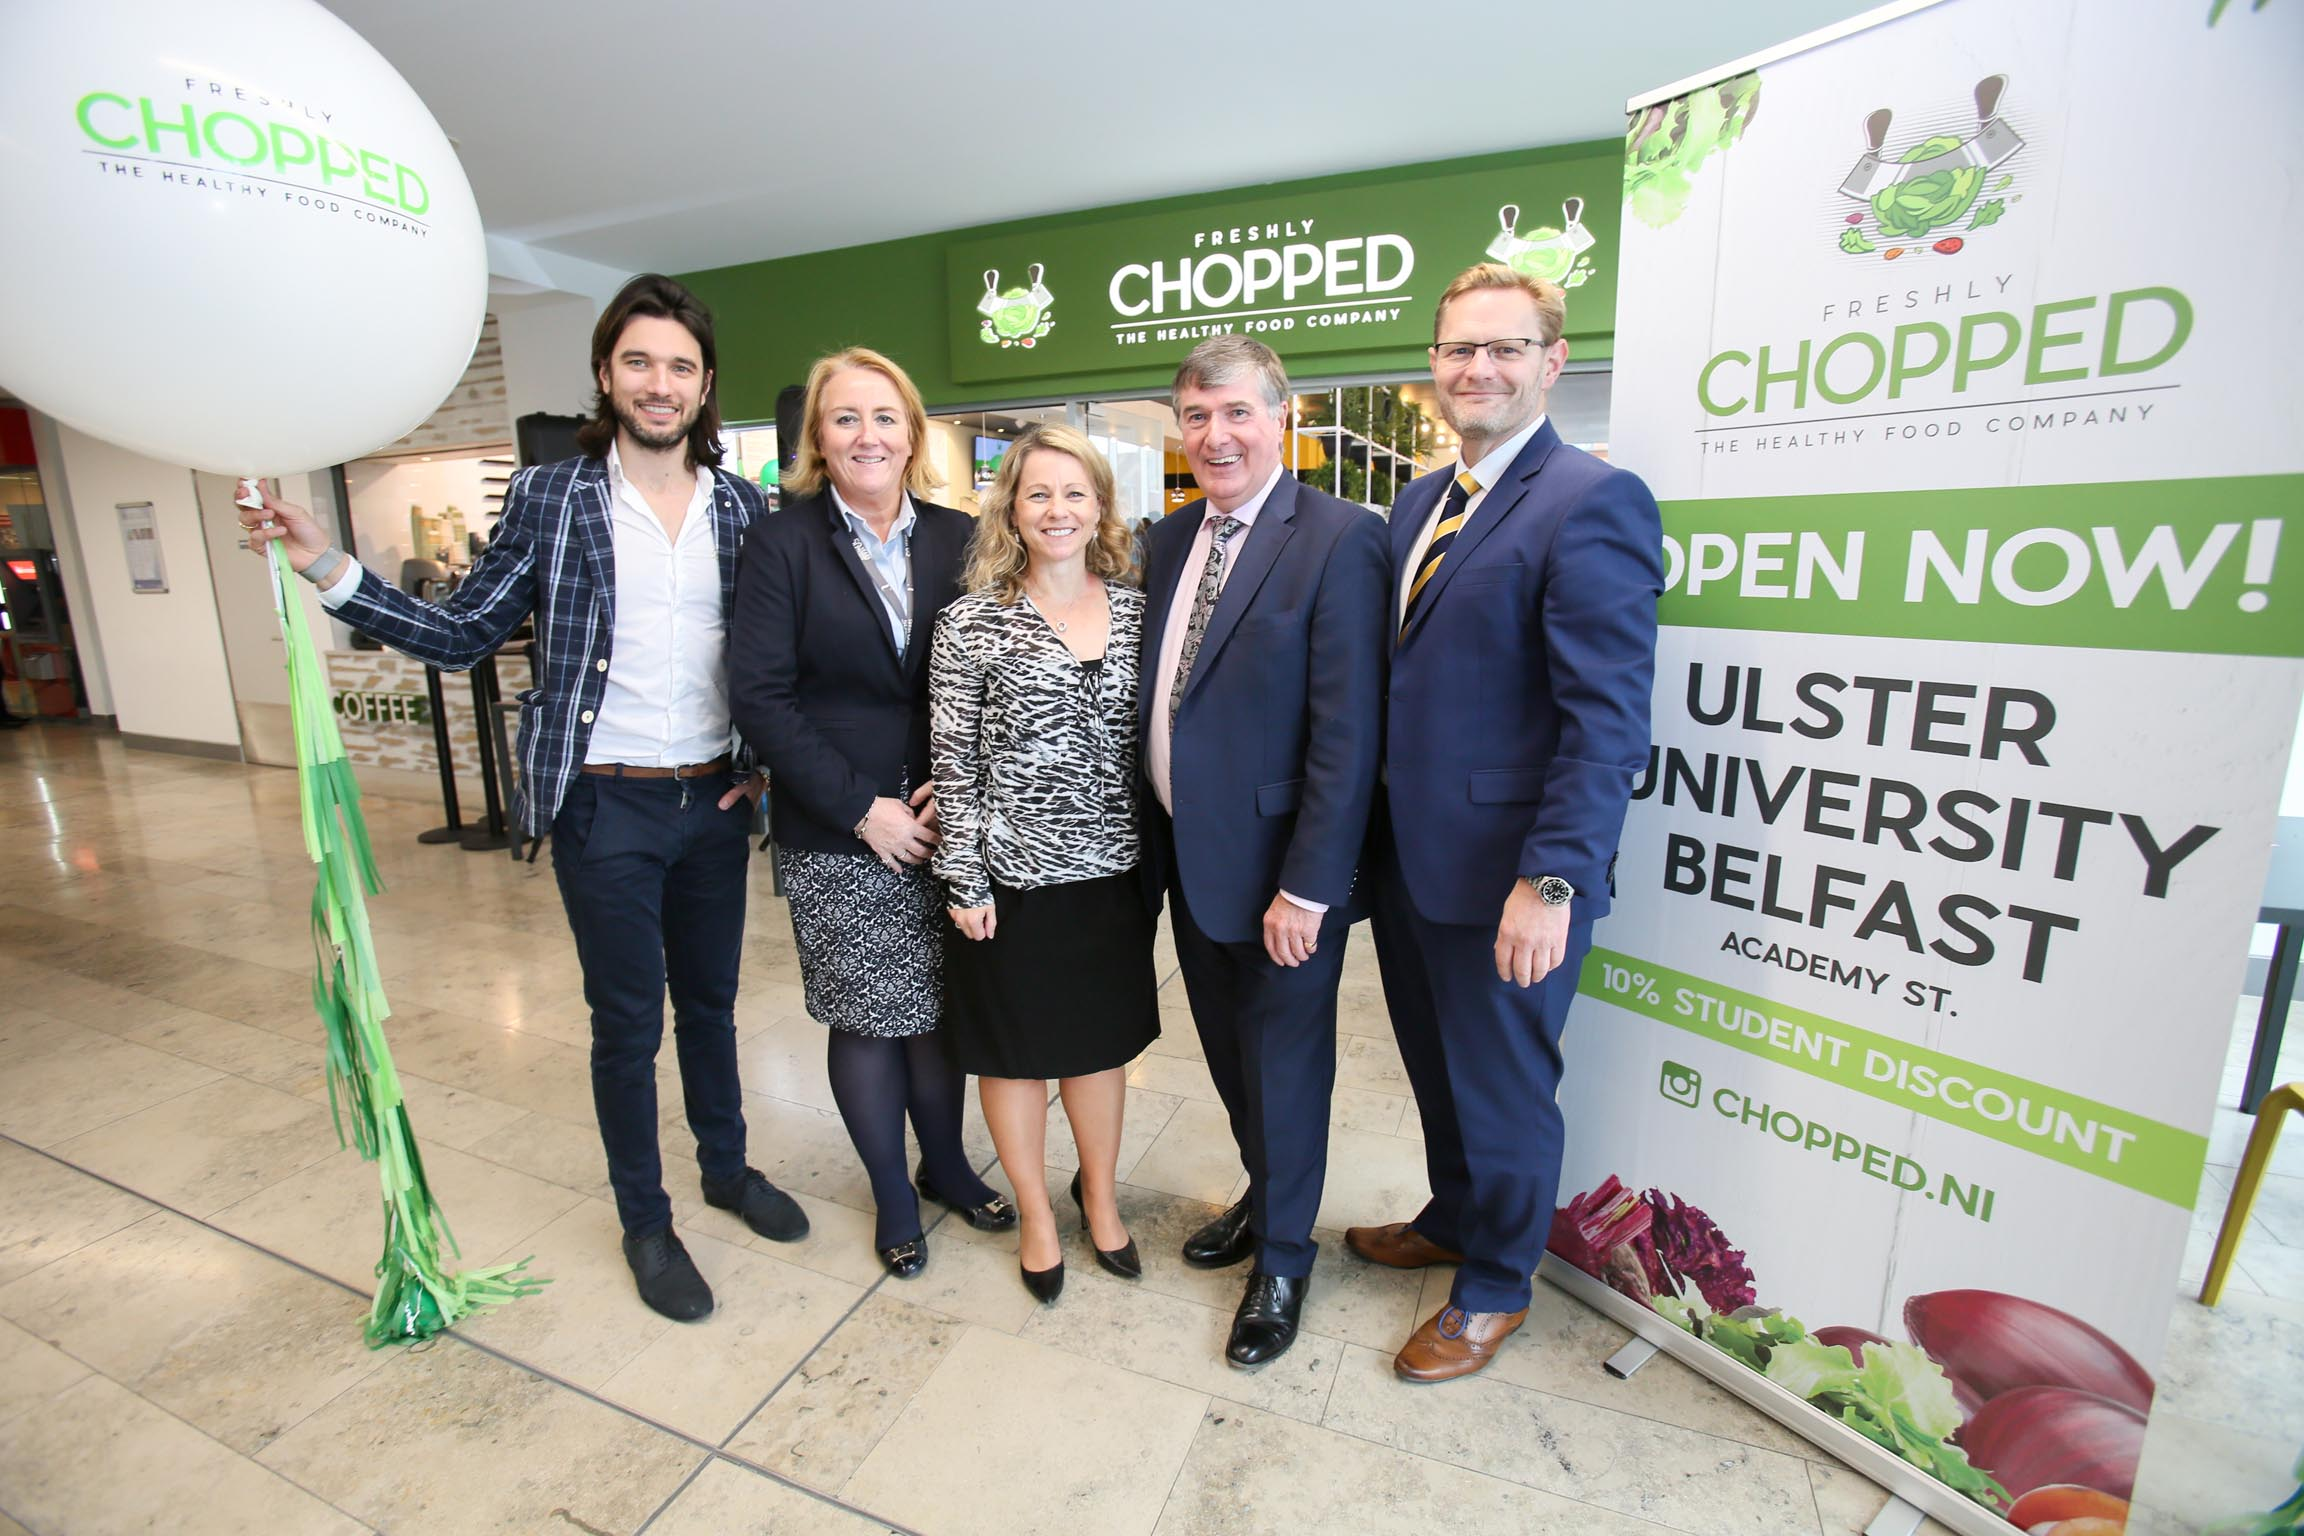 Freshly Chopped officially launches at Ulster University's Belfast Campus